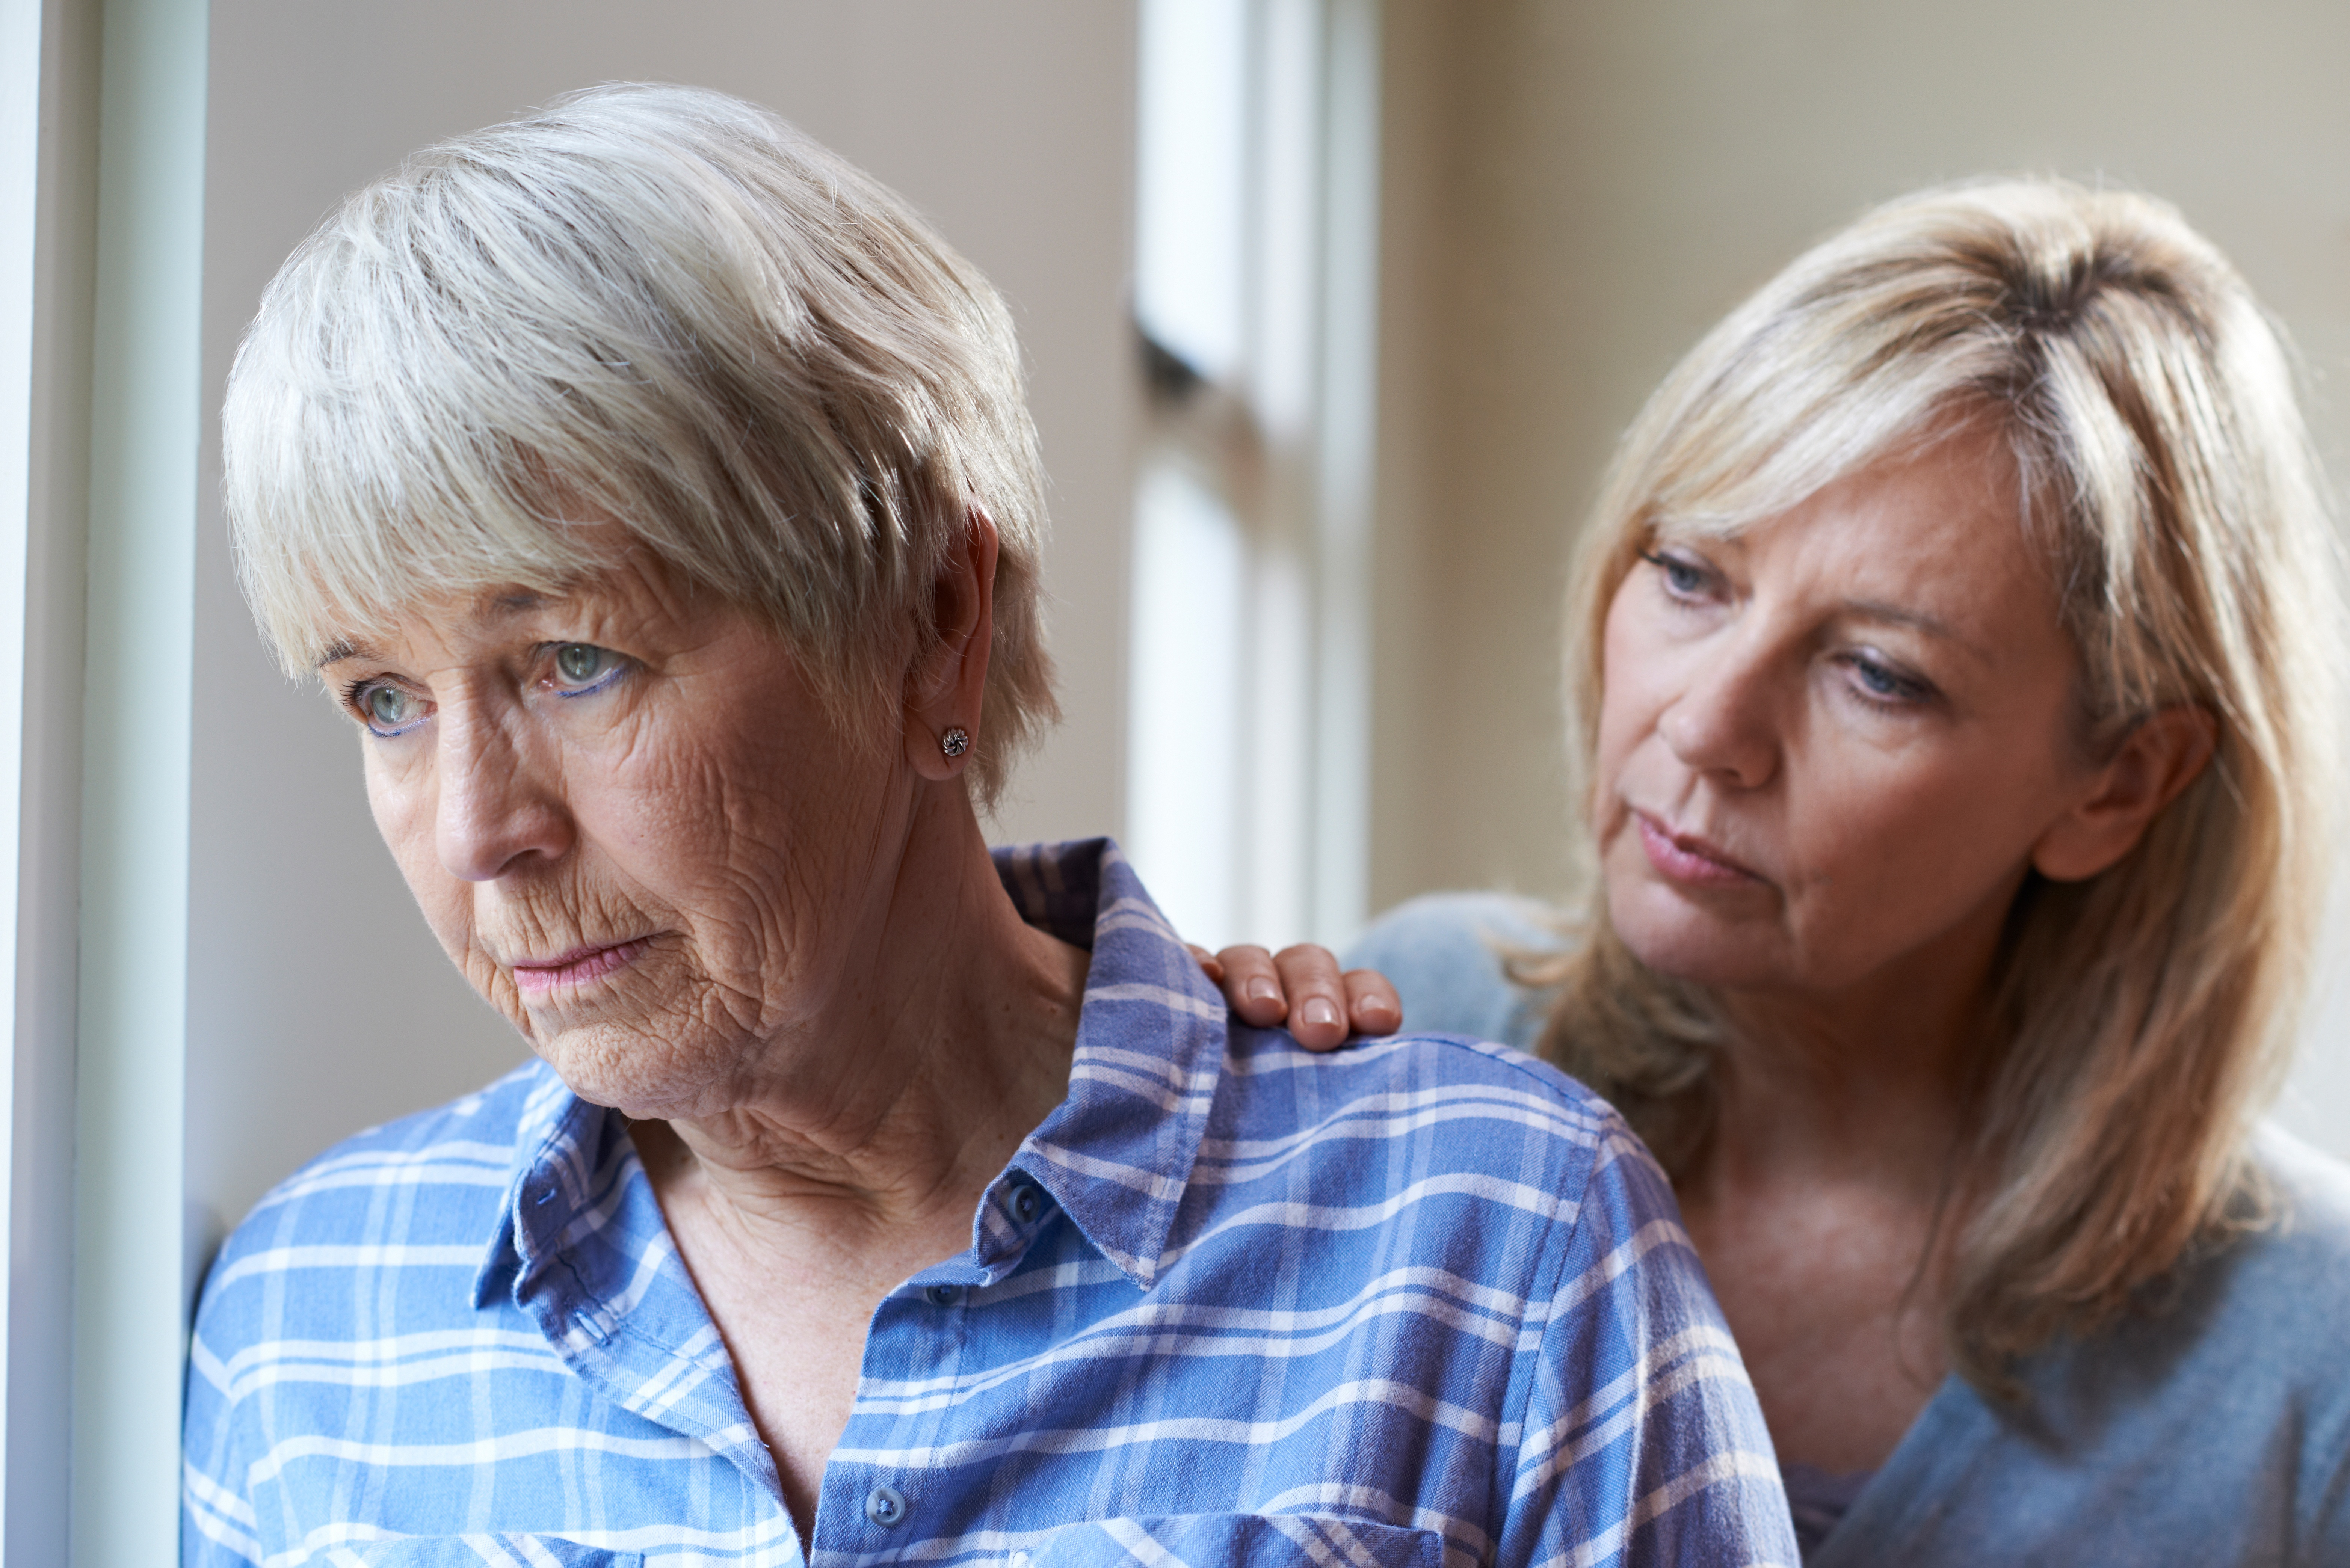 Adult child caring for loved one with dementia wondering if it's time to consider memory care